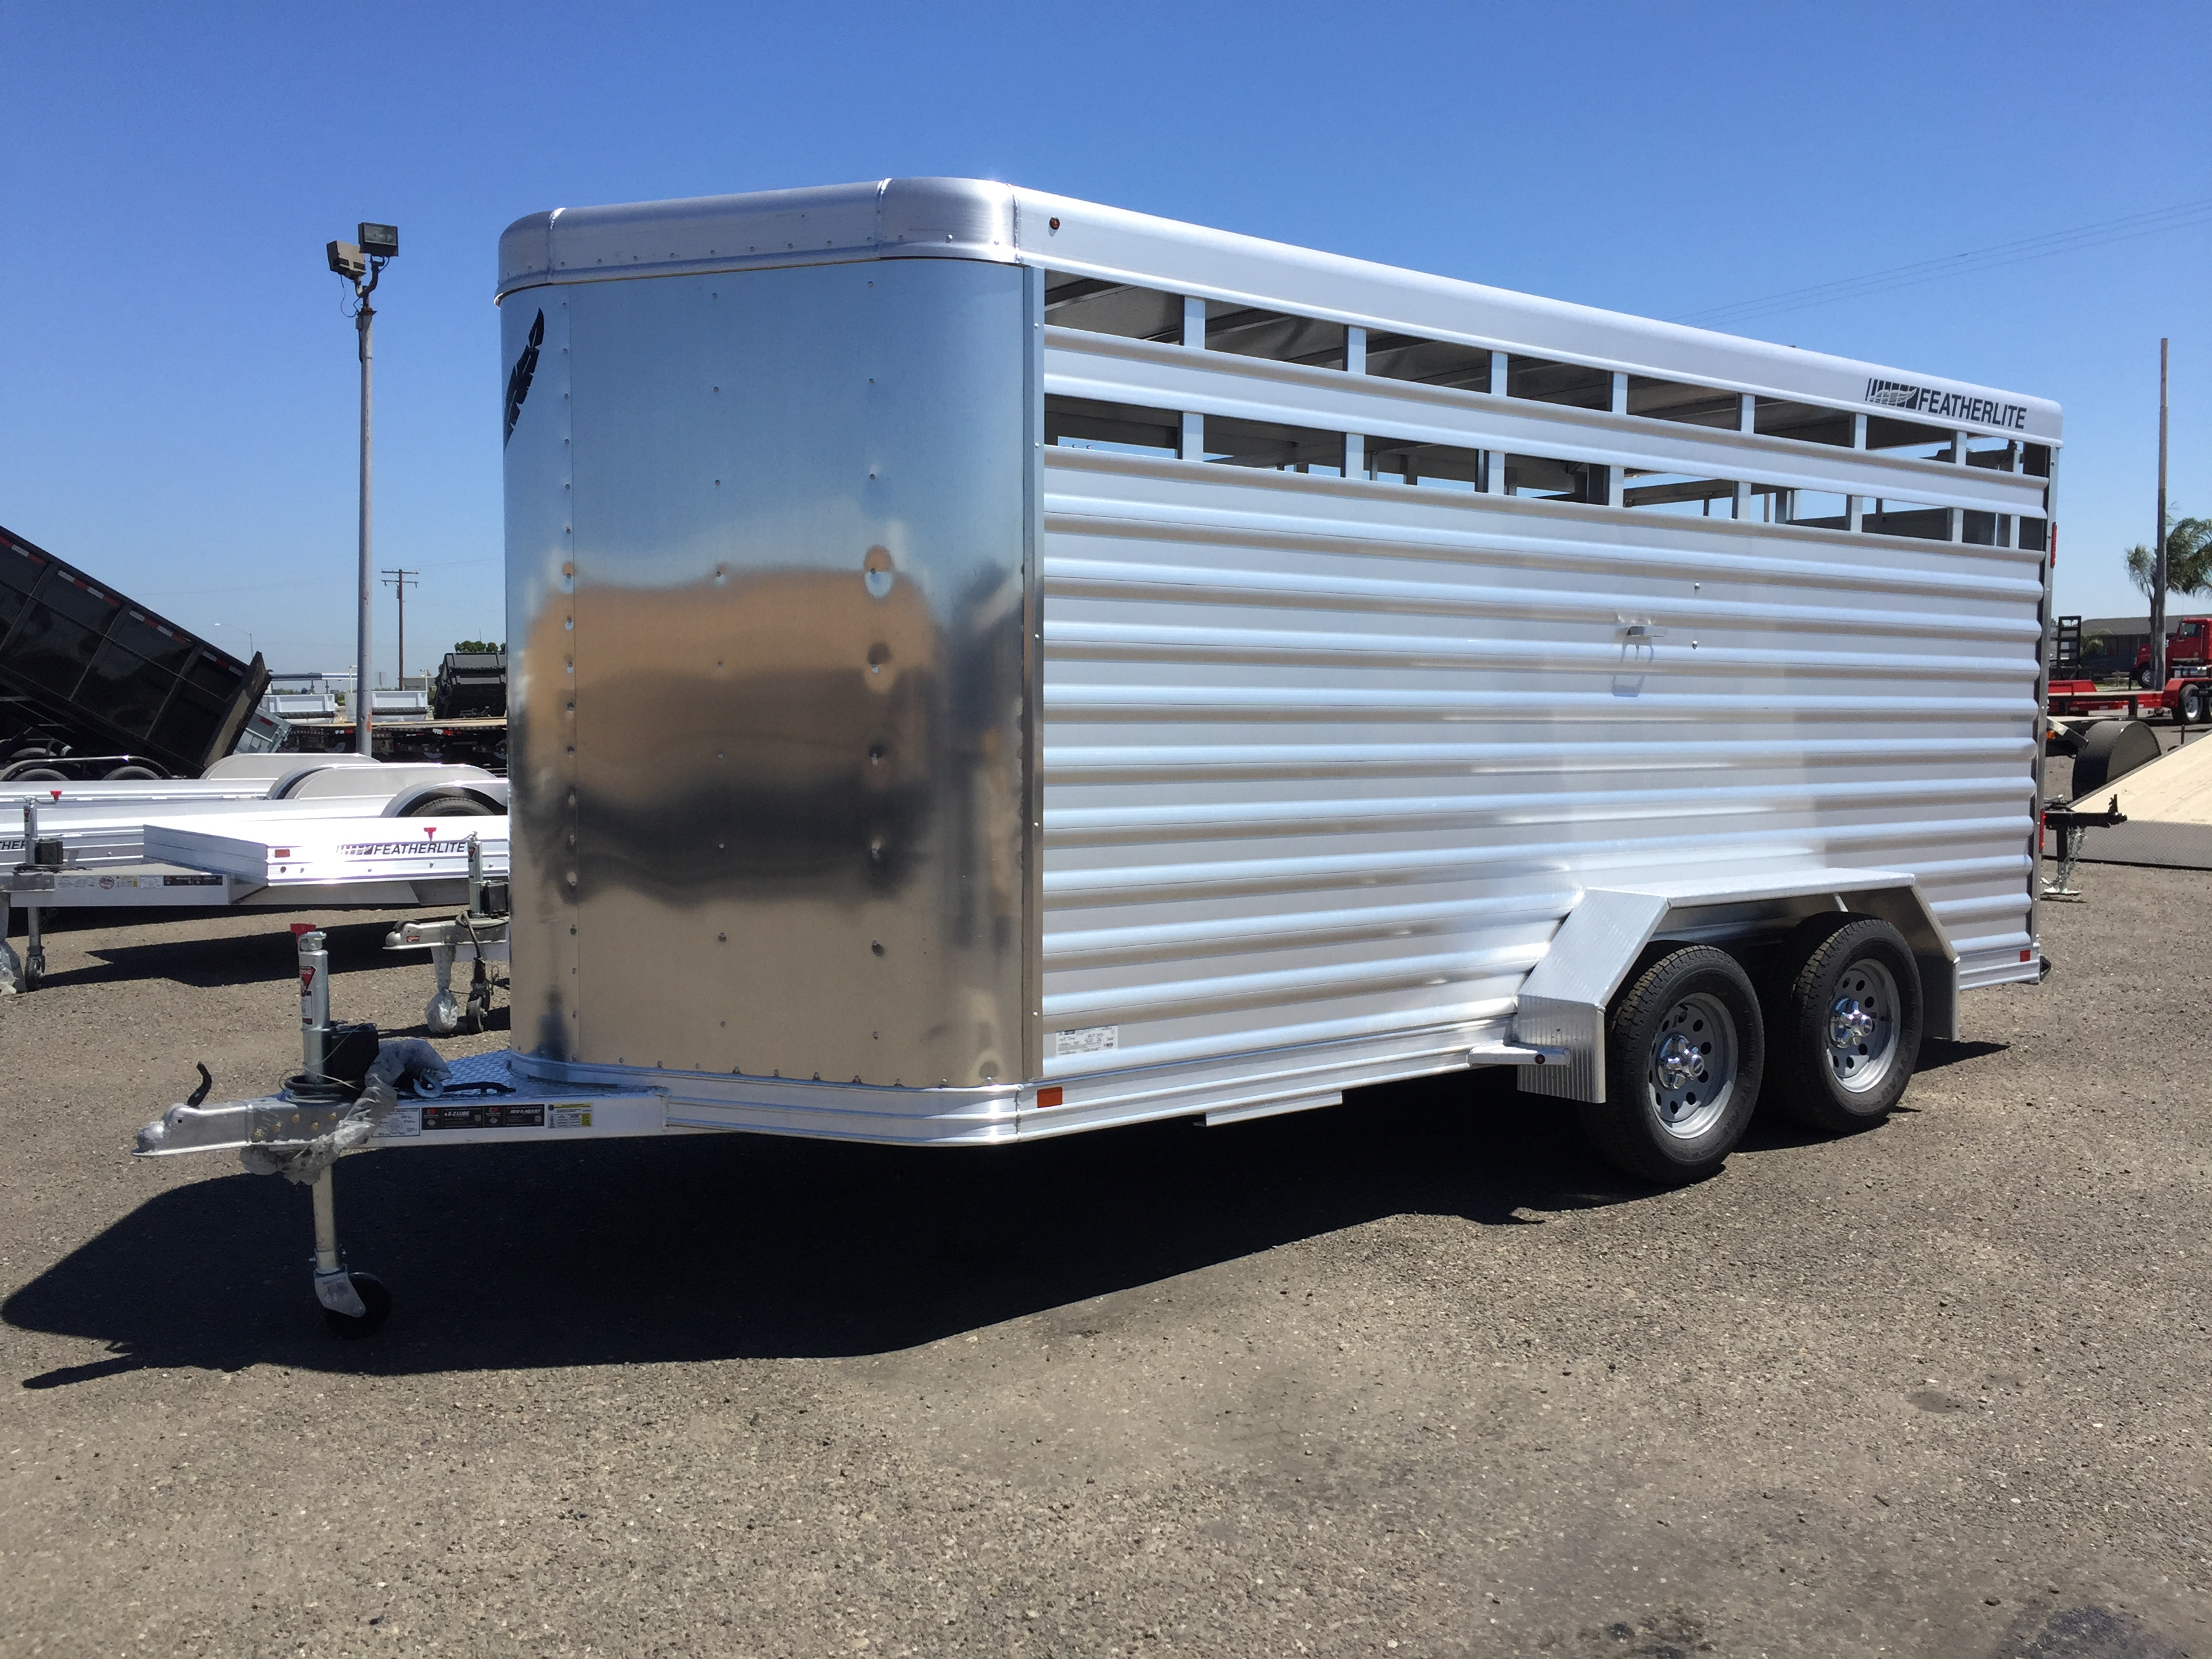 Used Trailers for Sale Melbourne